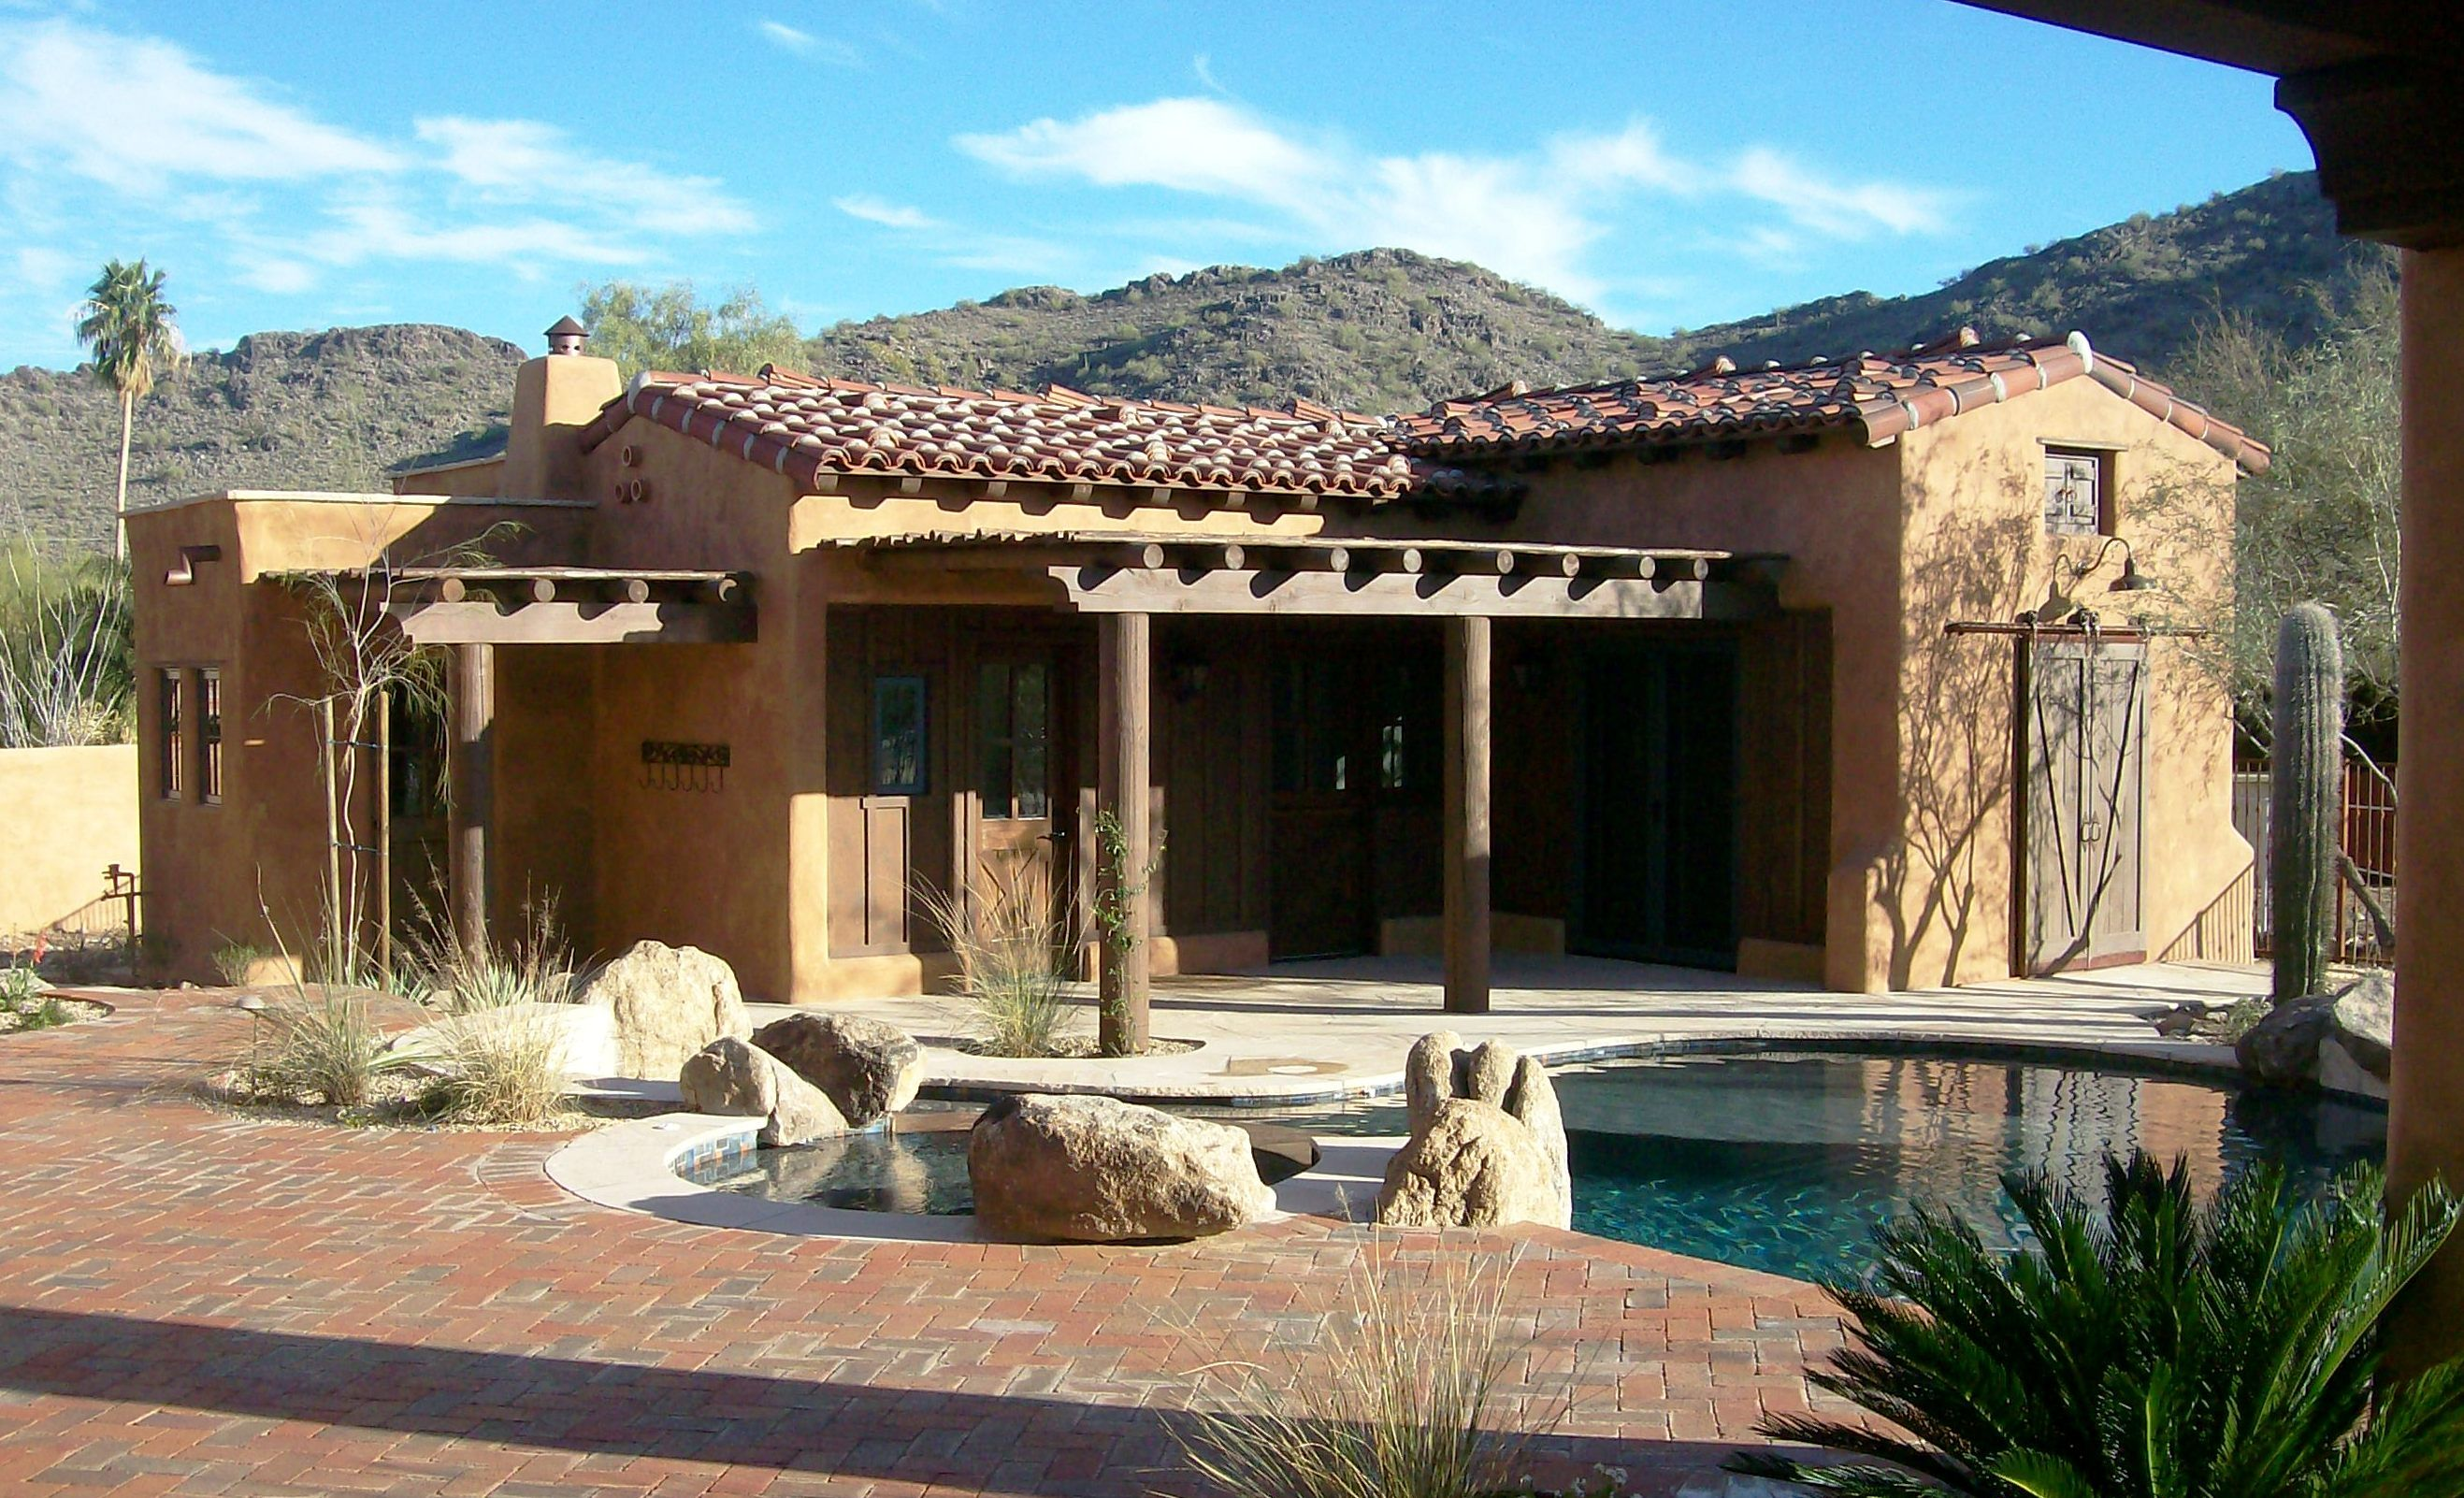 Mexican Style Homes Casitas Custom Home Builders And Home Remodeling In Arizona Mecico